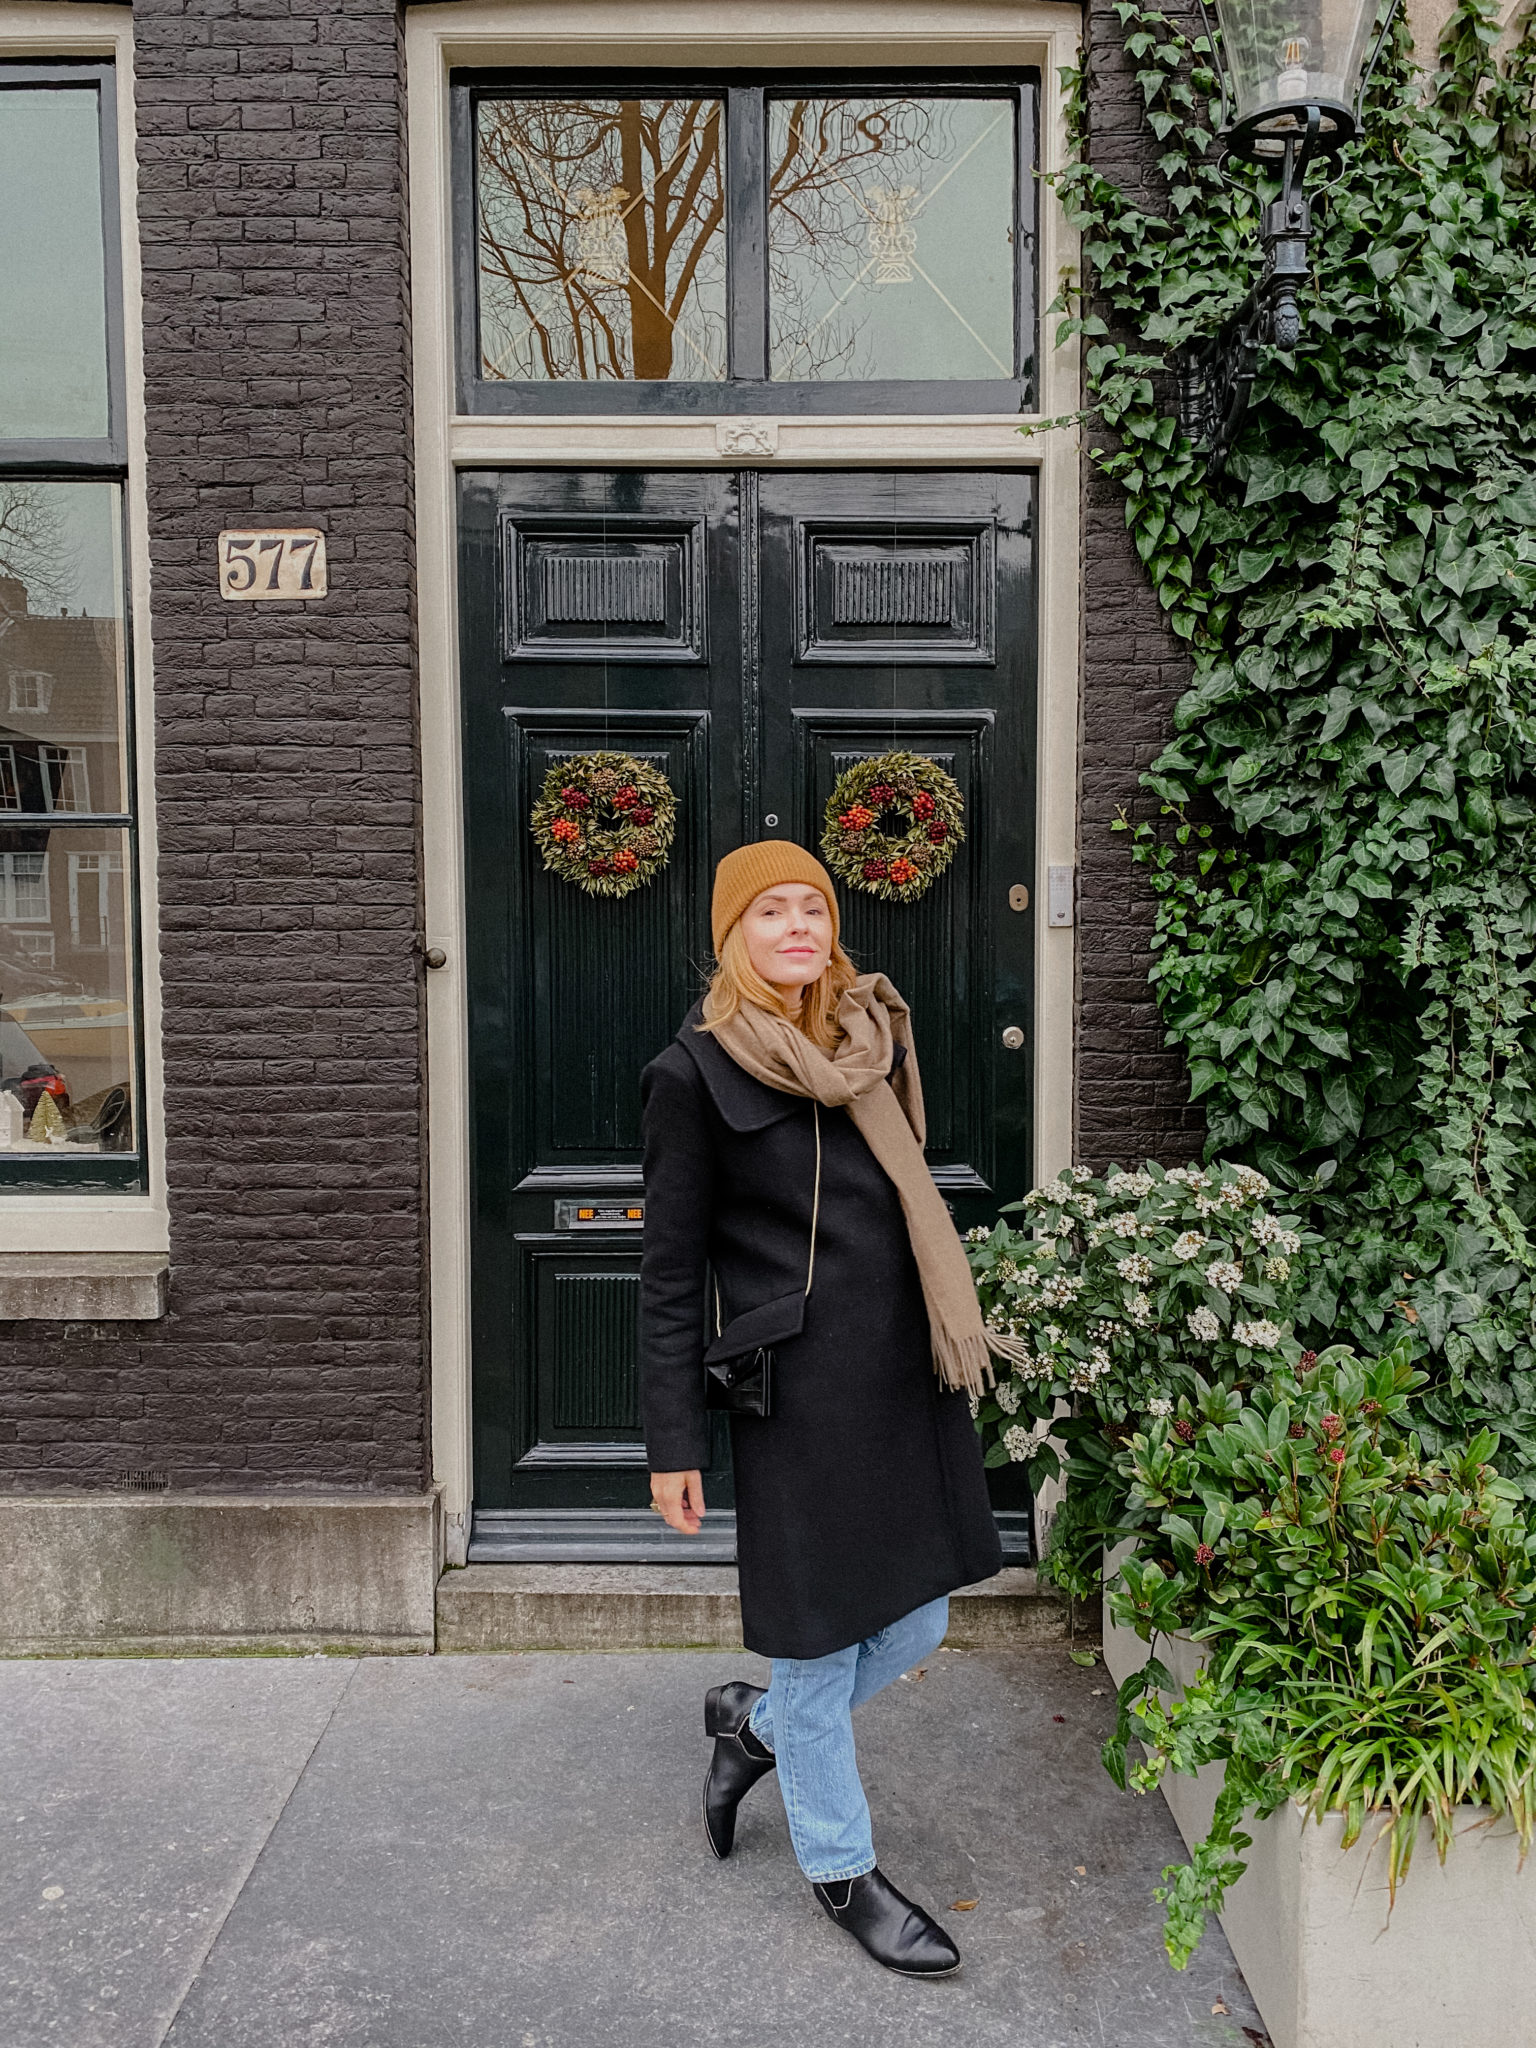 Amsterdam Nine Streets | WORLD OF WANDERLUST